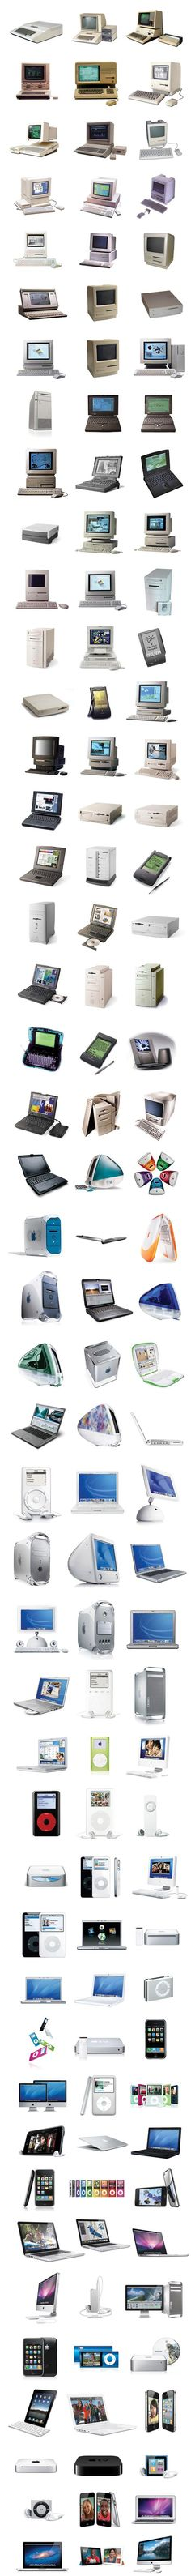 The evolution of Apple